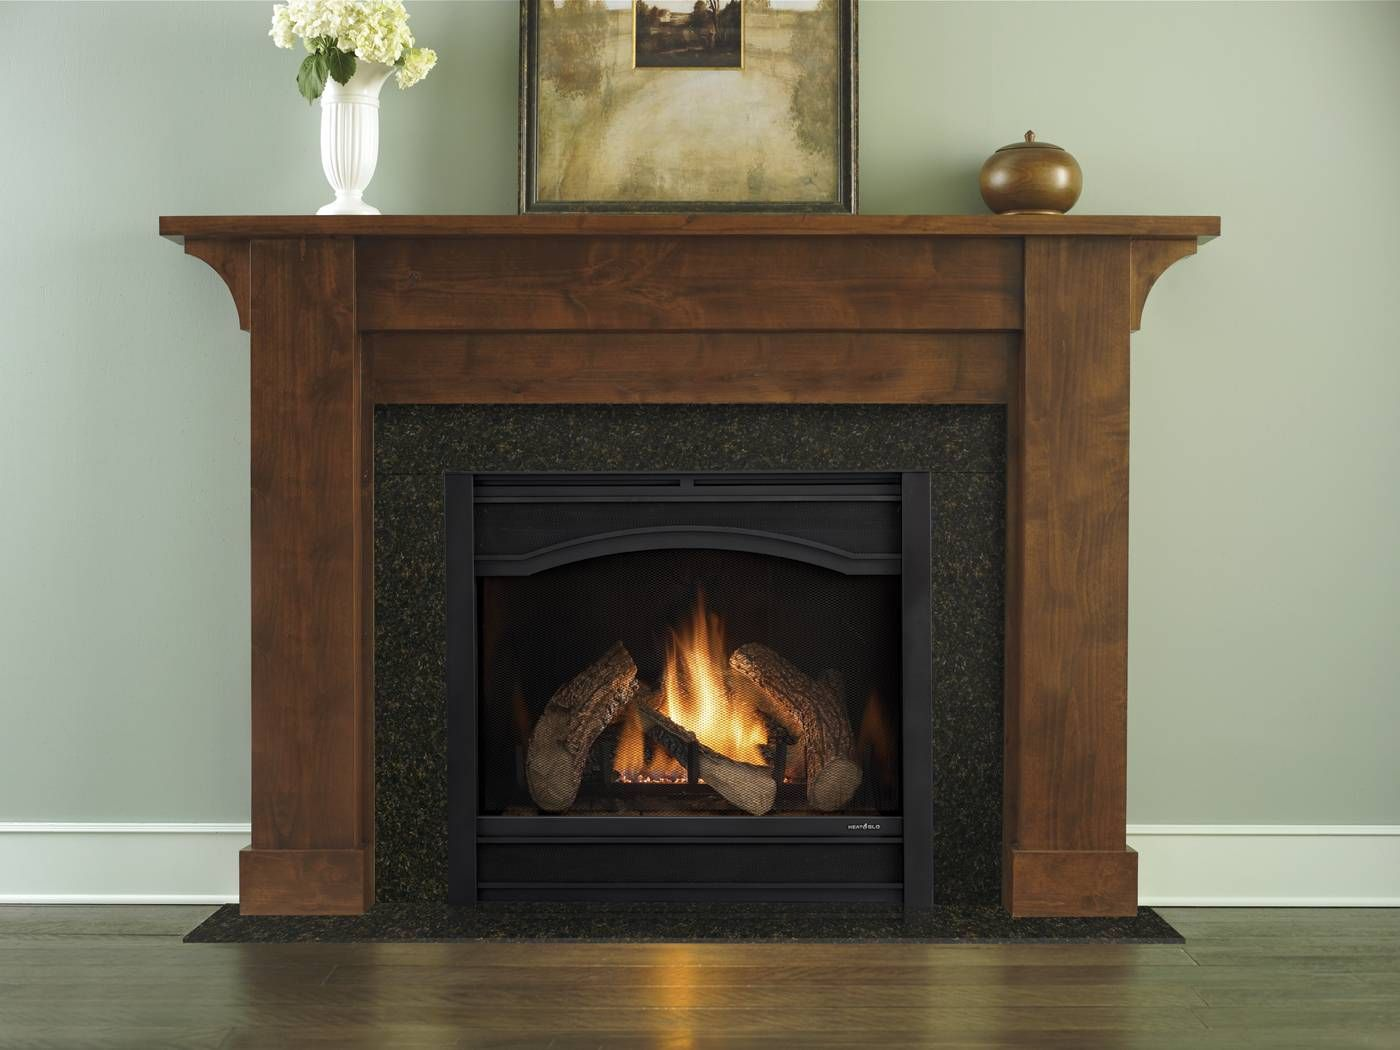 Heat Glo 6000 Clx With Arcadia Front Simple Wood Mantel